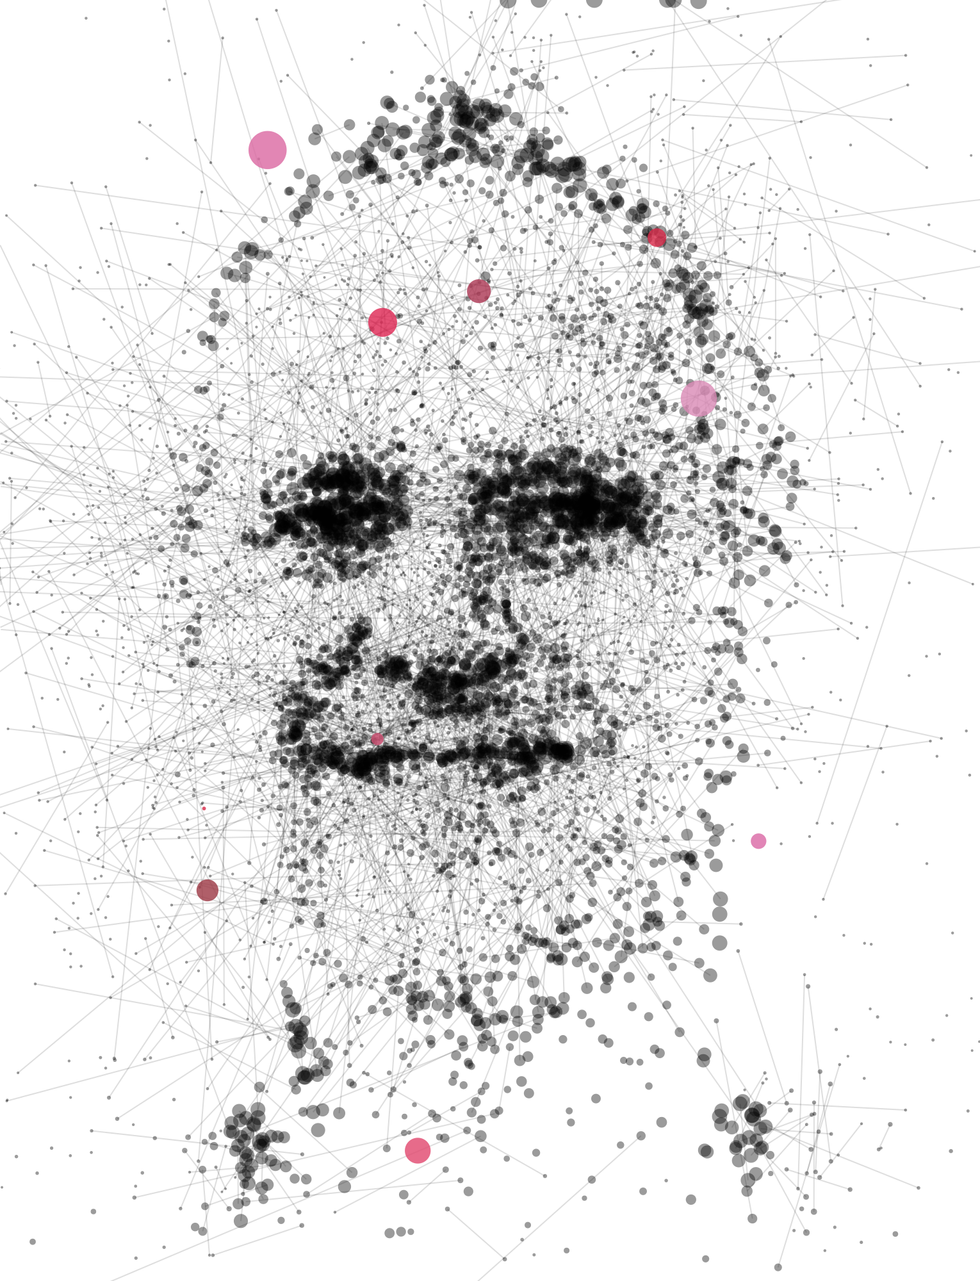 Illustration of Michael Jordan made of dots and lines.